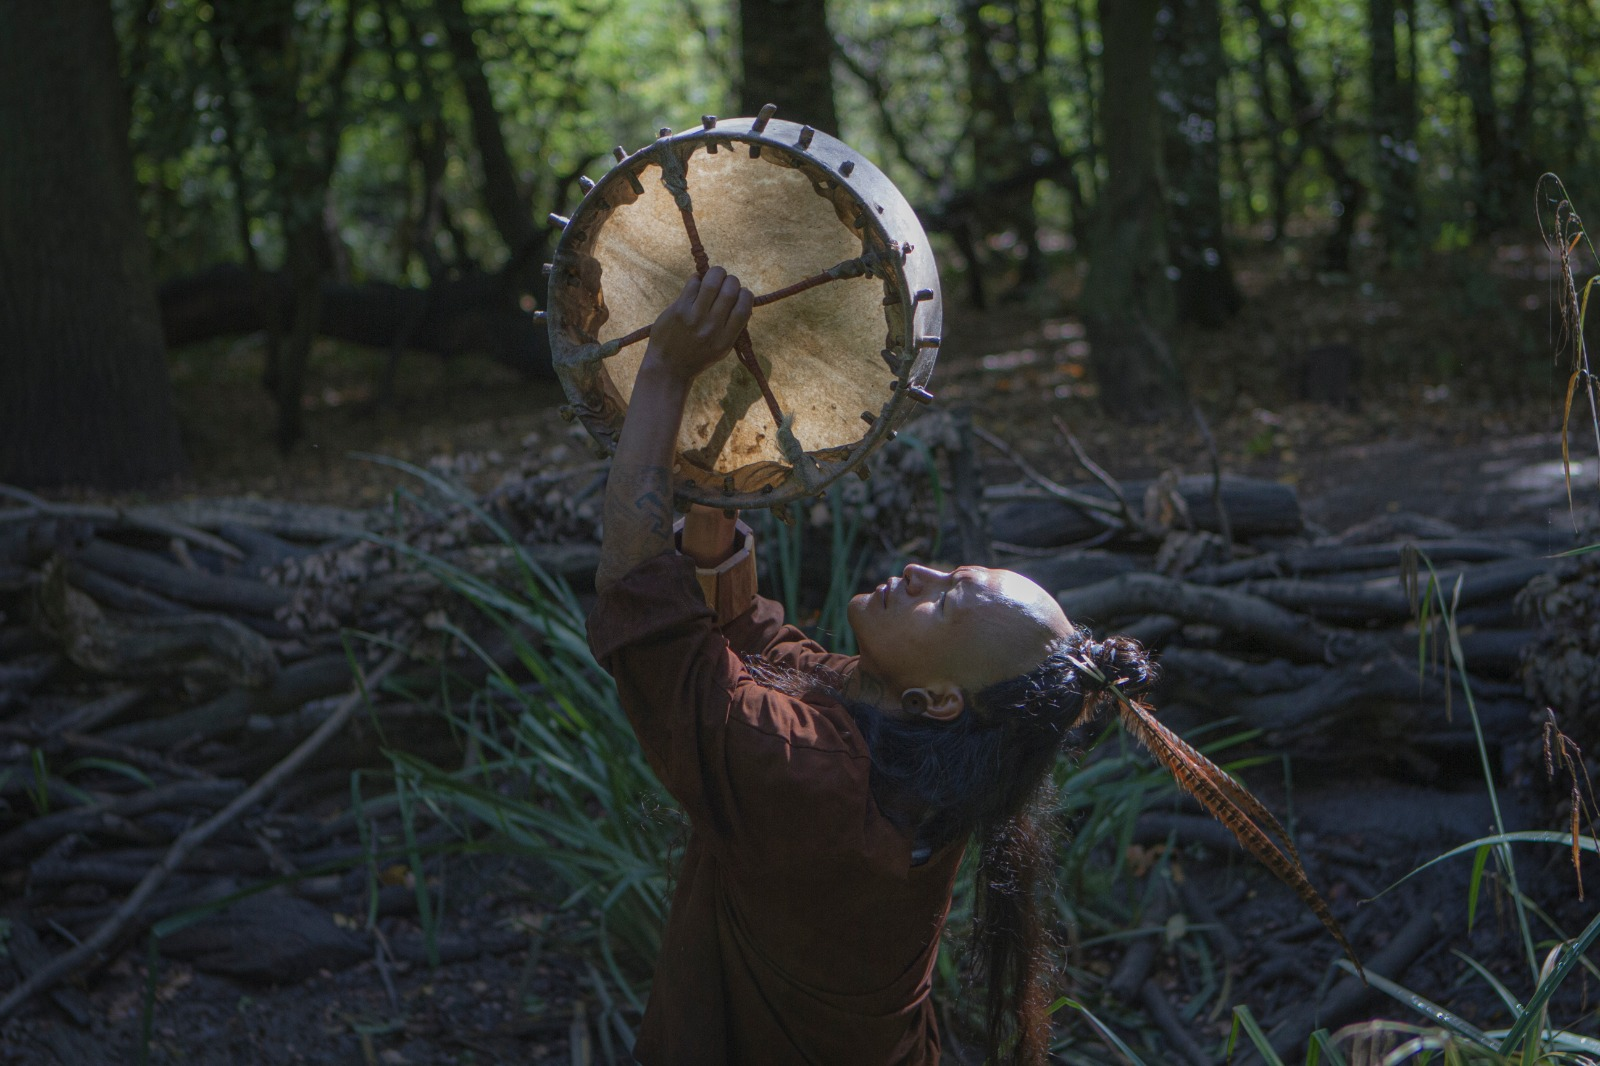 A person with long dark hair in a pony tail with a feather headdress stands in a forest and holds up a drum whilst leaning back and looking up.